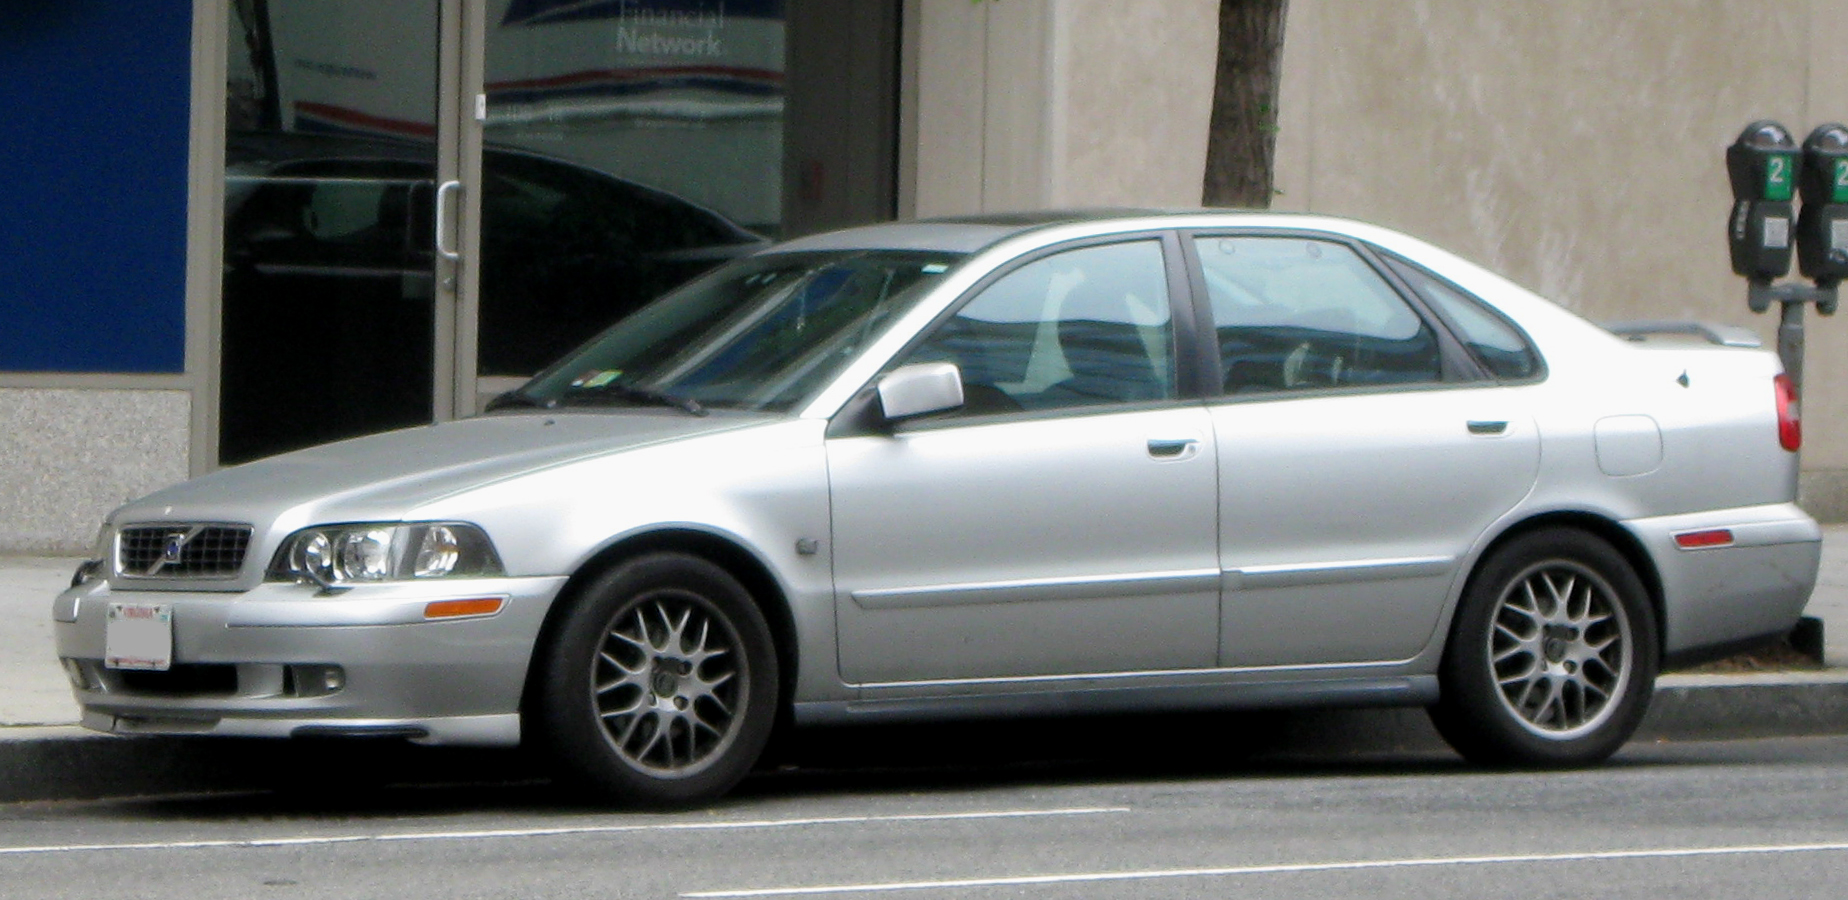 2004 Volvo S40 LSE - Sedan 1.9L Turbo auto